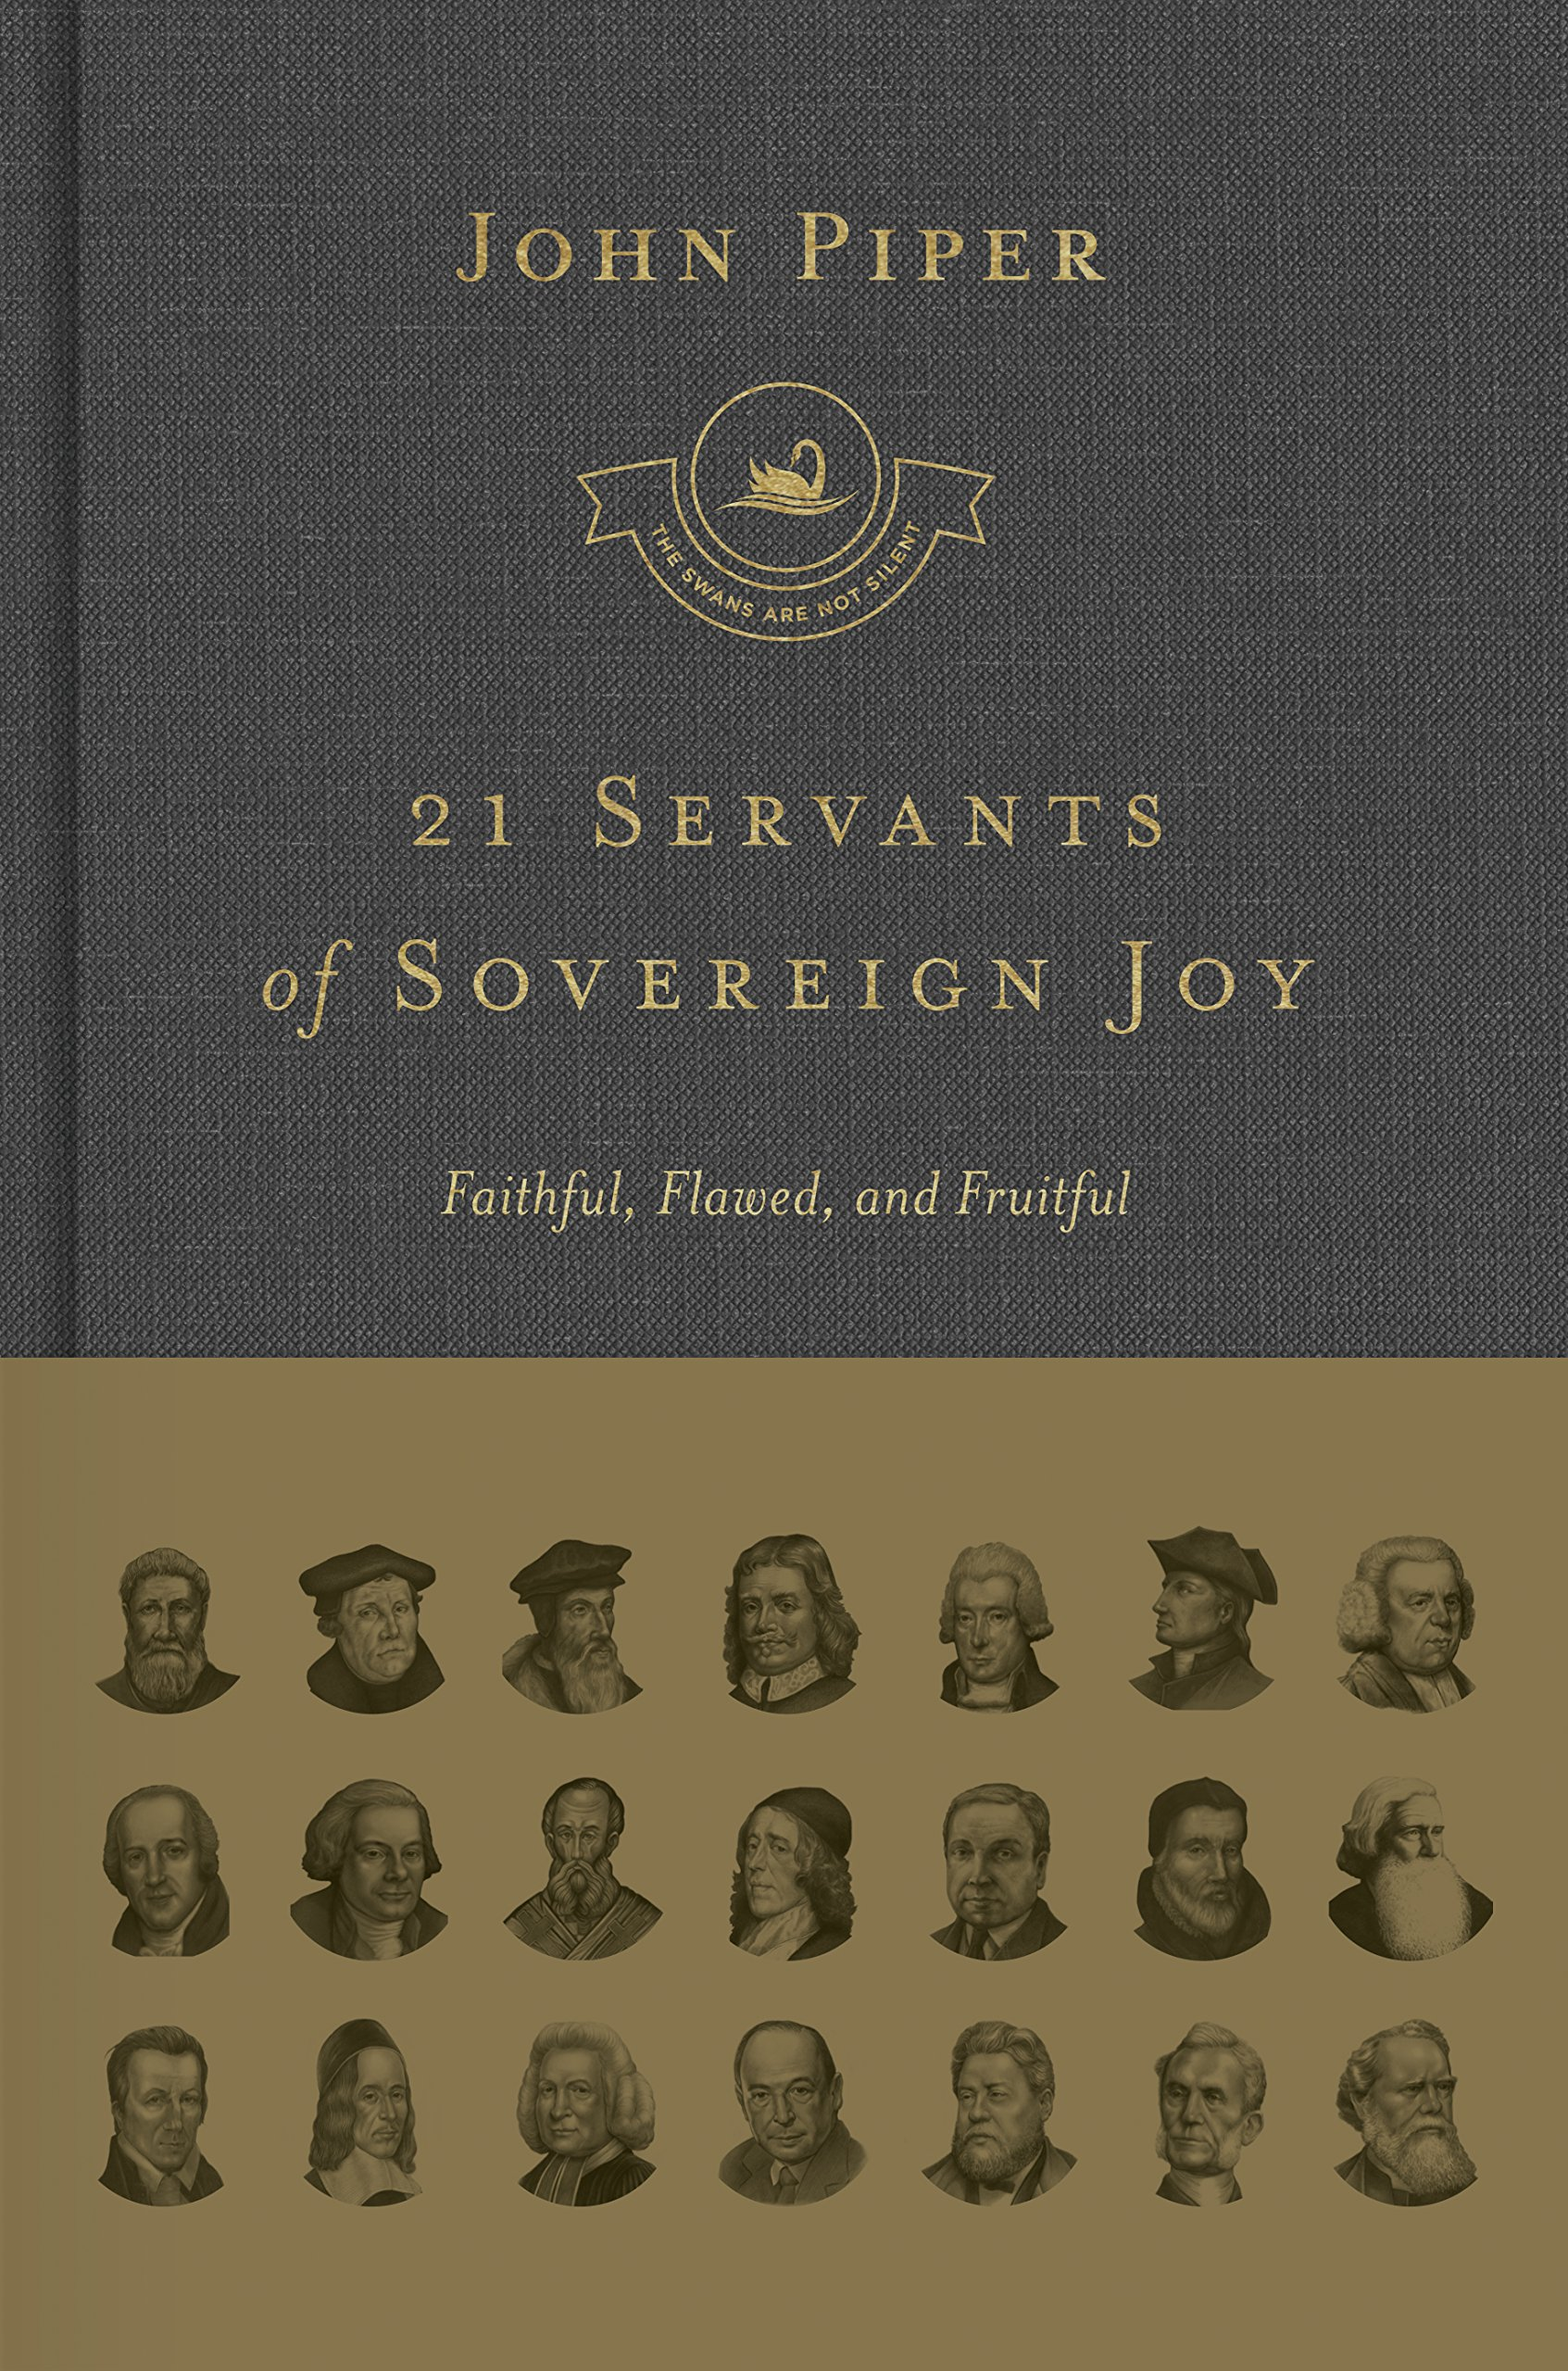 Image for 21 Servants of Sovereign Joy (Complete Set): Faithful, Flawed, and Fruitful (Swans Are Not Silent)